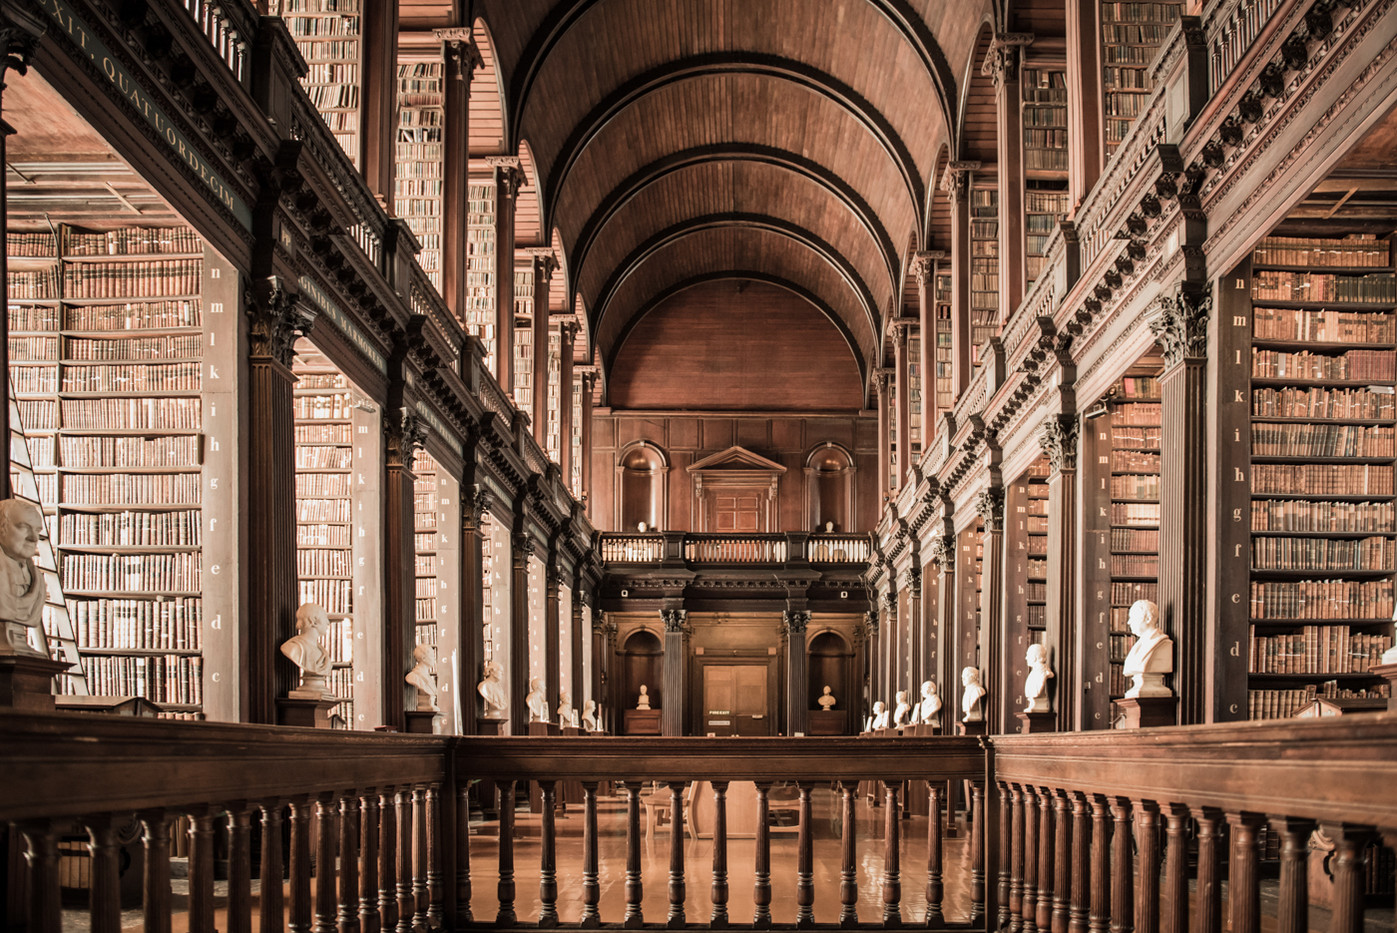 14 TRINITY LIBRARY IN DUBLIN by Doni Dupriez